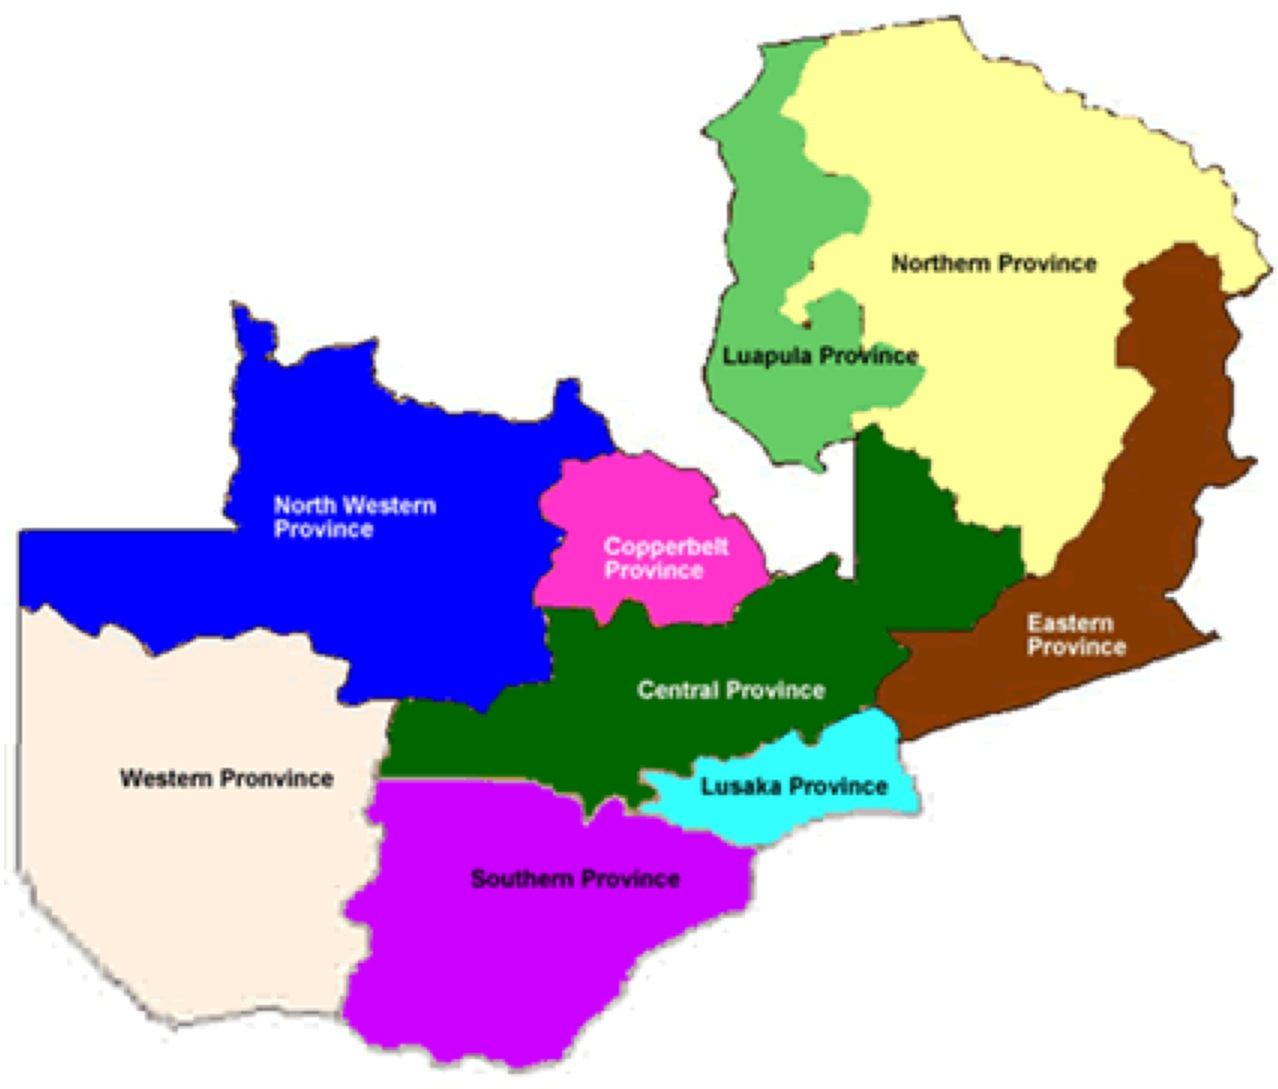 Zambian Economist Zambia Elections 2011 Constituency Maps Updated